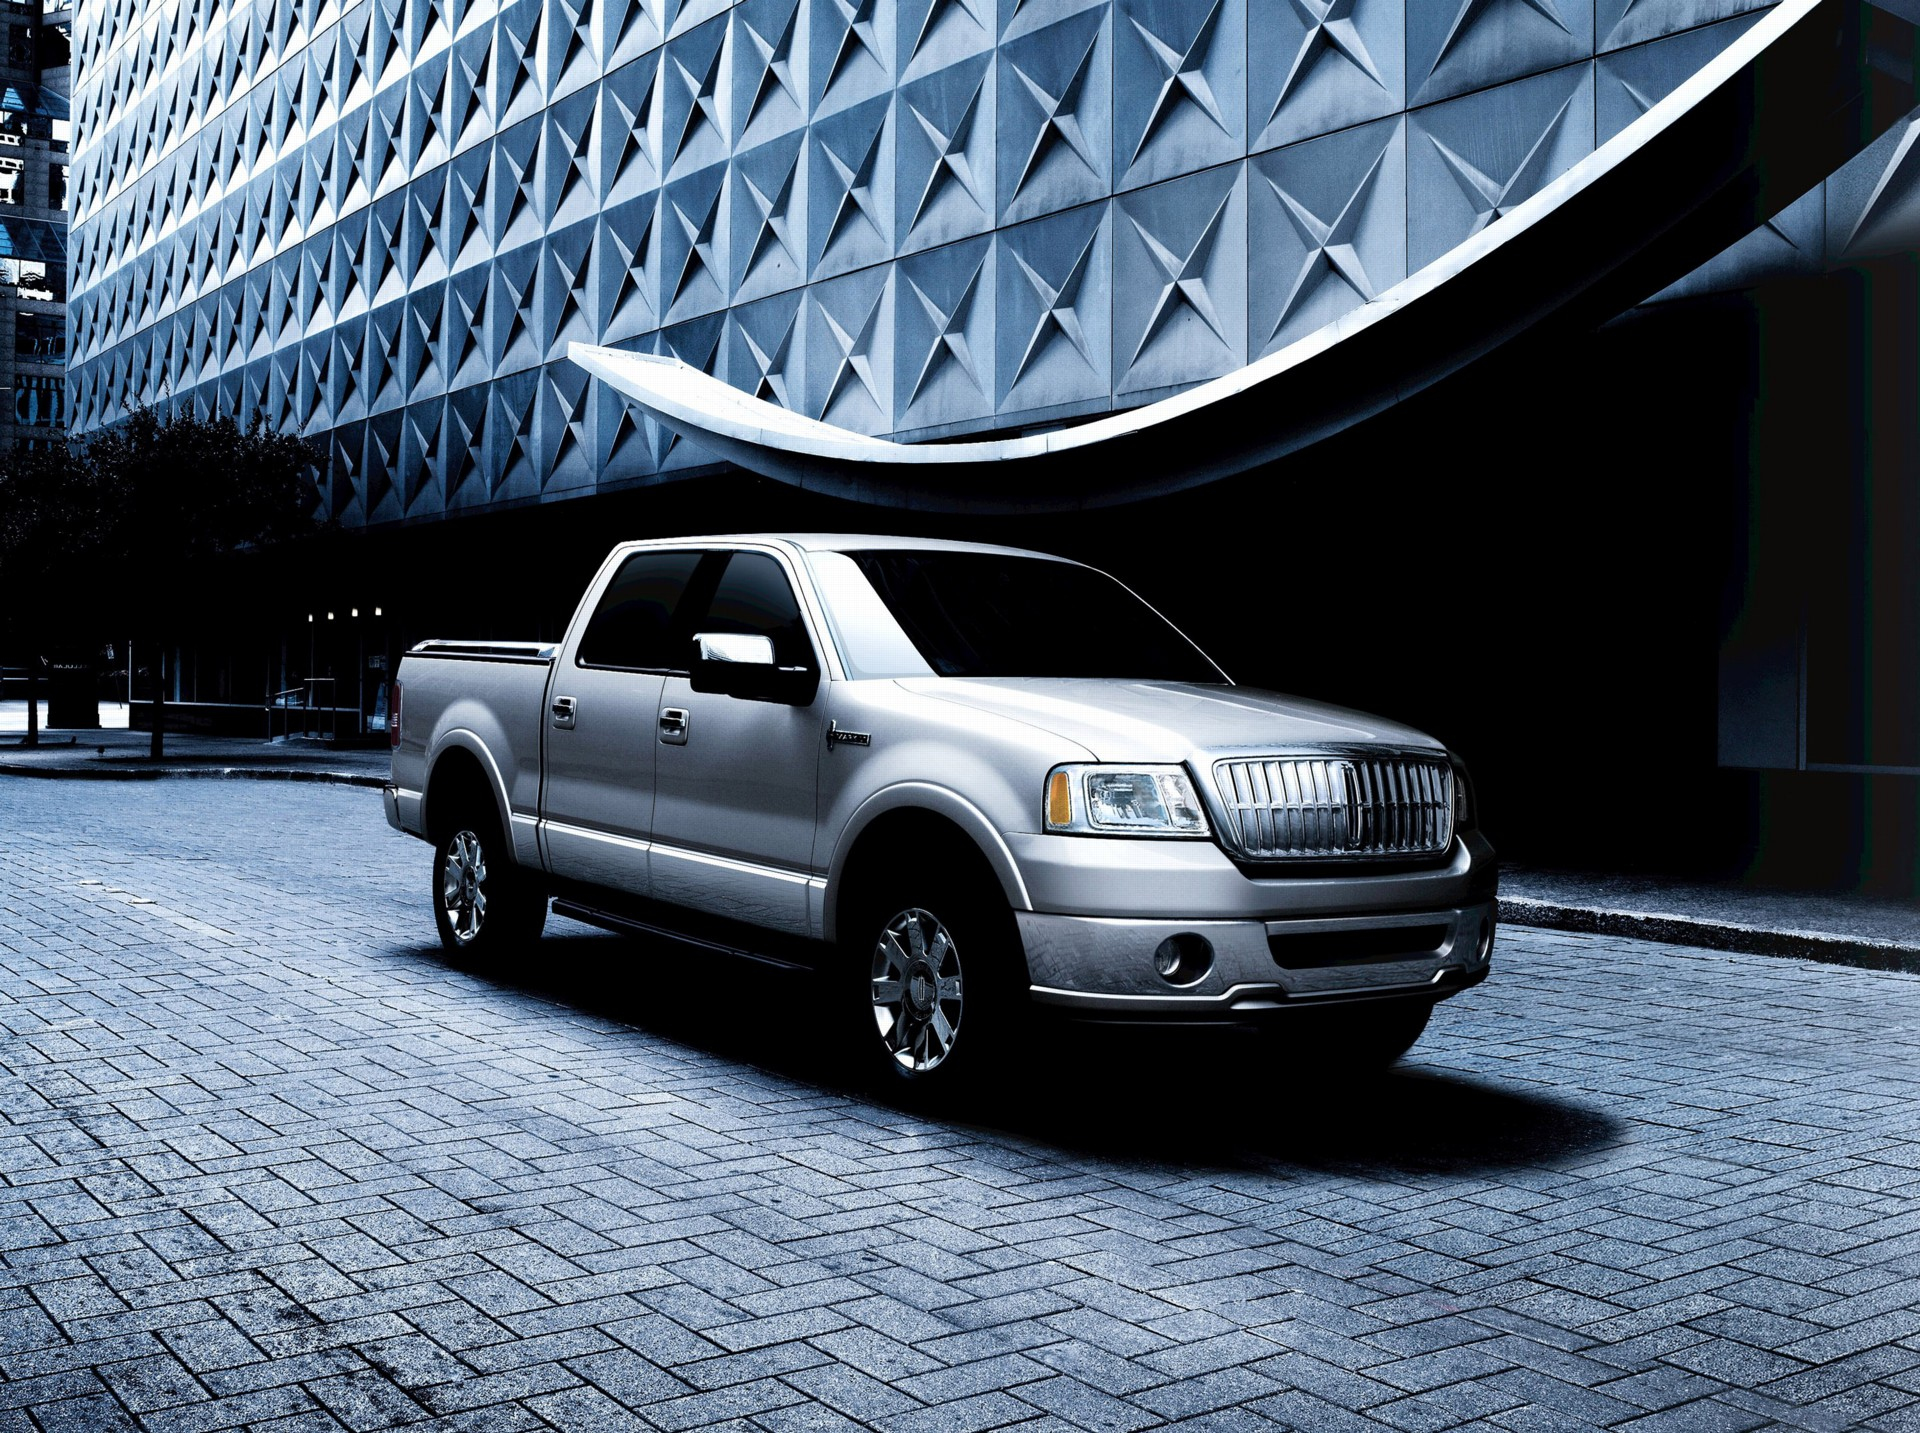 2007 Lincoln Mark Lt History Pictures Value Auction S Research And News